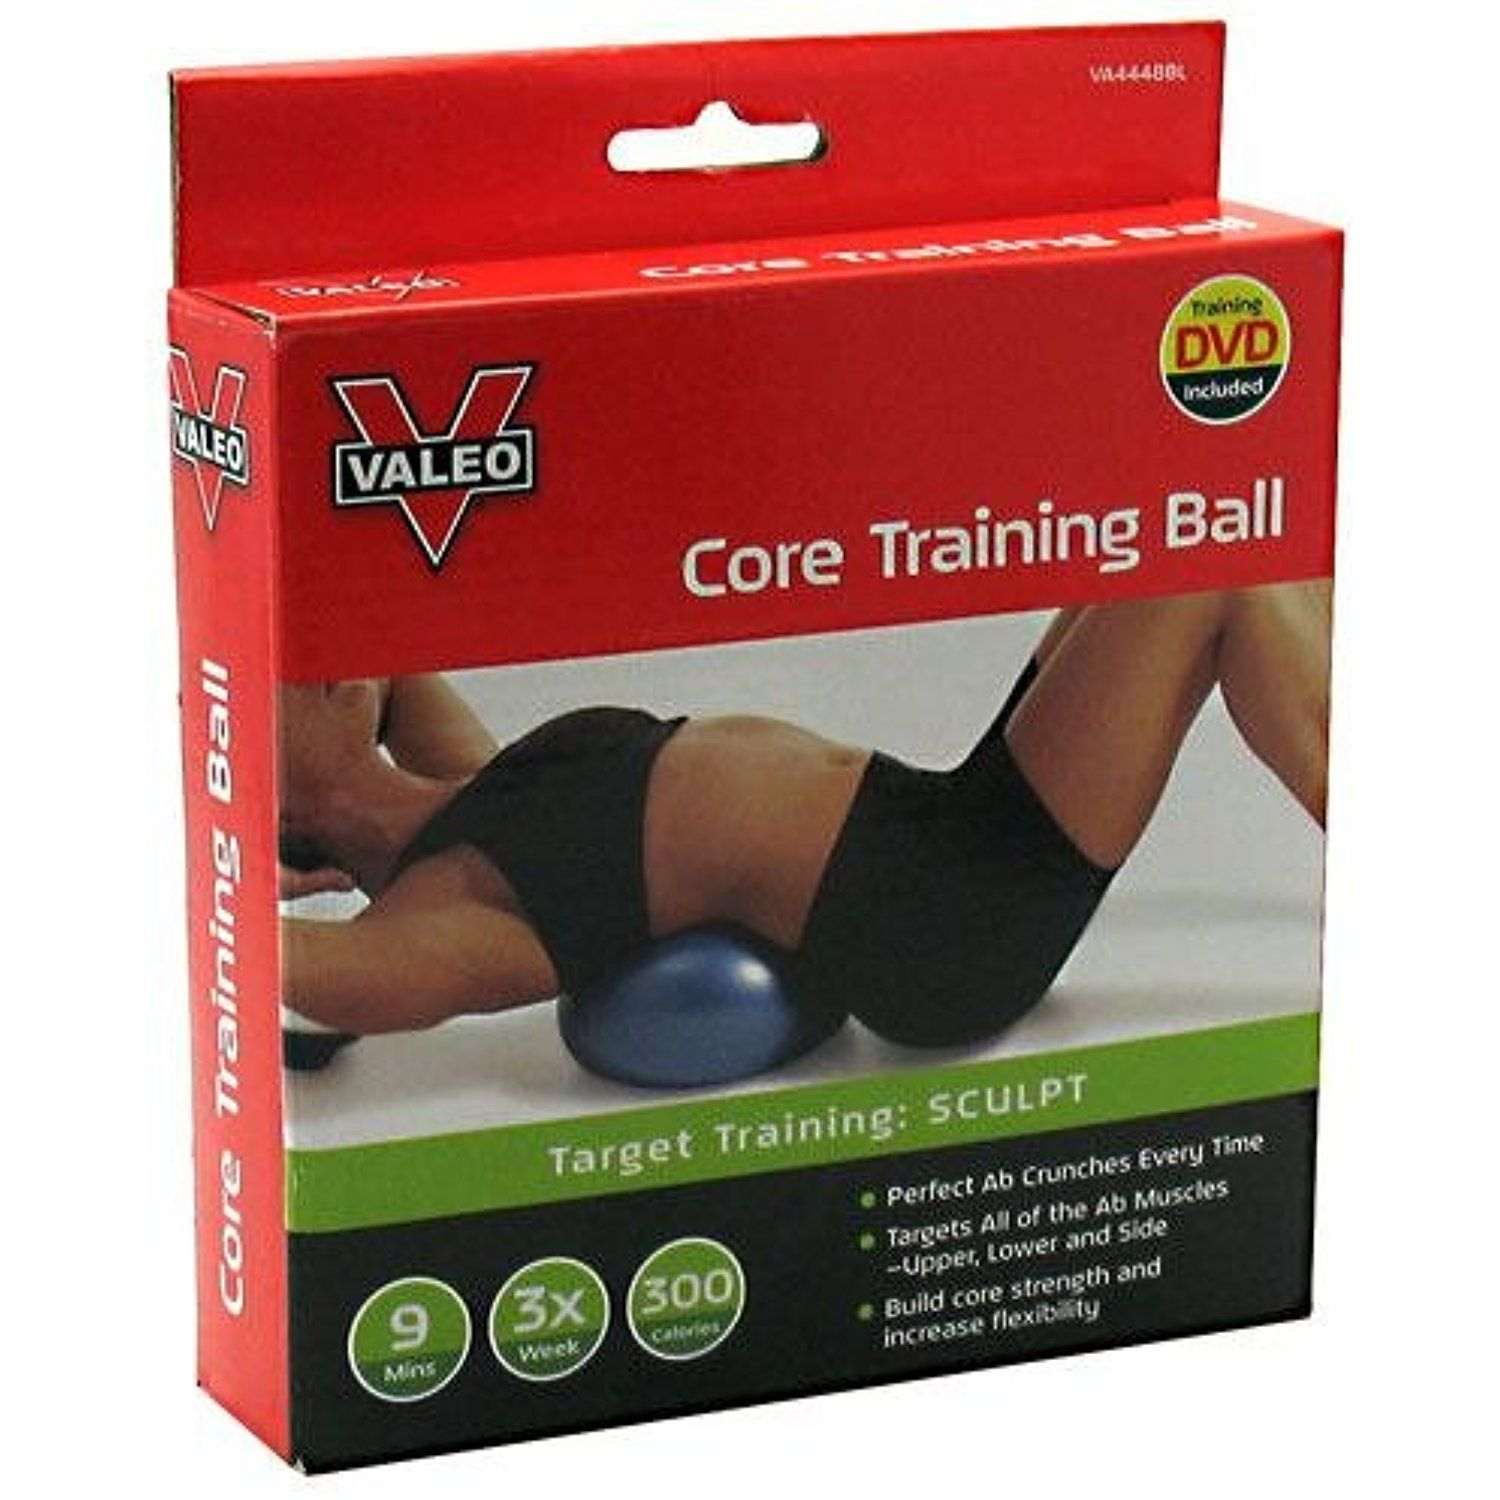 Valeo Core Training Ball >>> Click image to review more